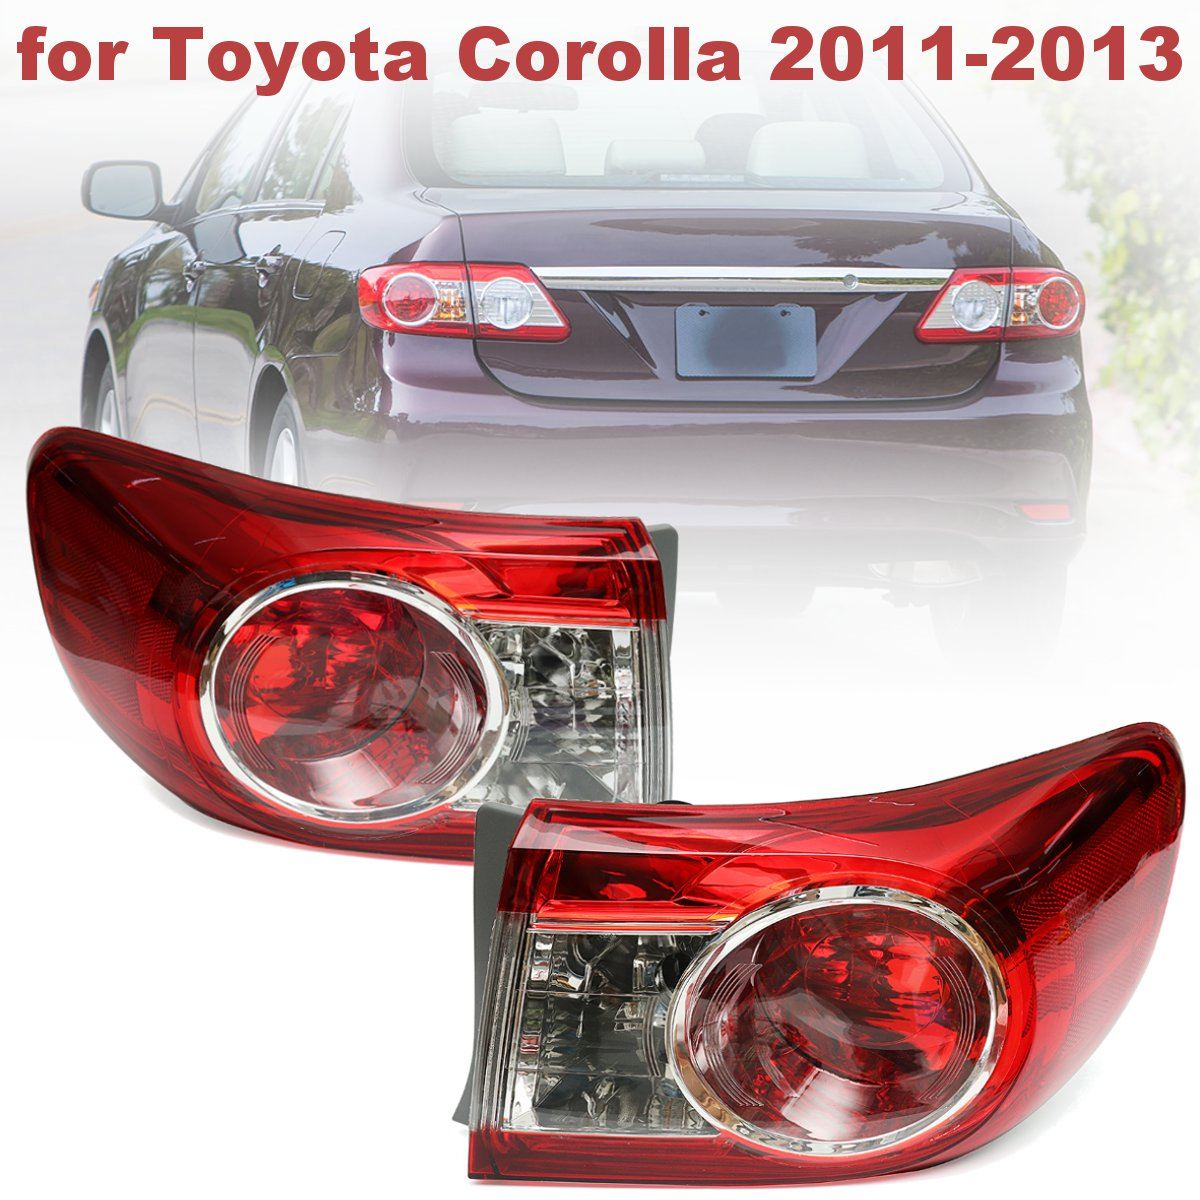 #TO2804111 #81560-02580 Replacement Pair Red Rear Left Right Side Tail Lights Brake Lamps for Toyota Corolla 2011 2012 2013 free shipping 2pc mudslinger body rear tail side graphic vinyl for toyota hilux vigo 2011 2012 2013 2014decals